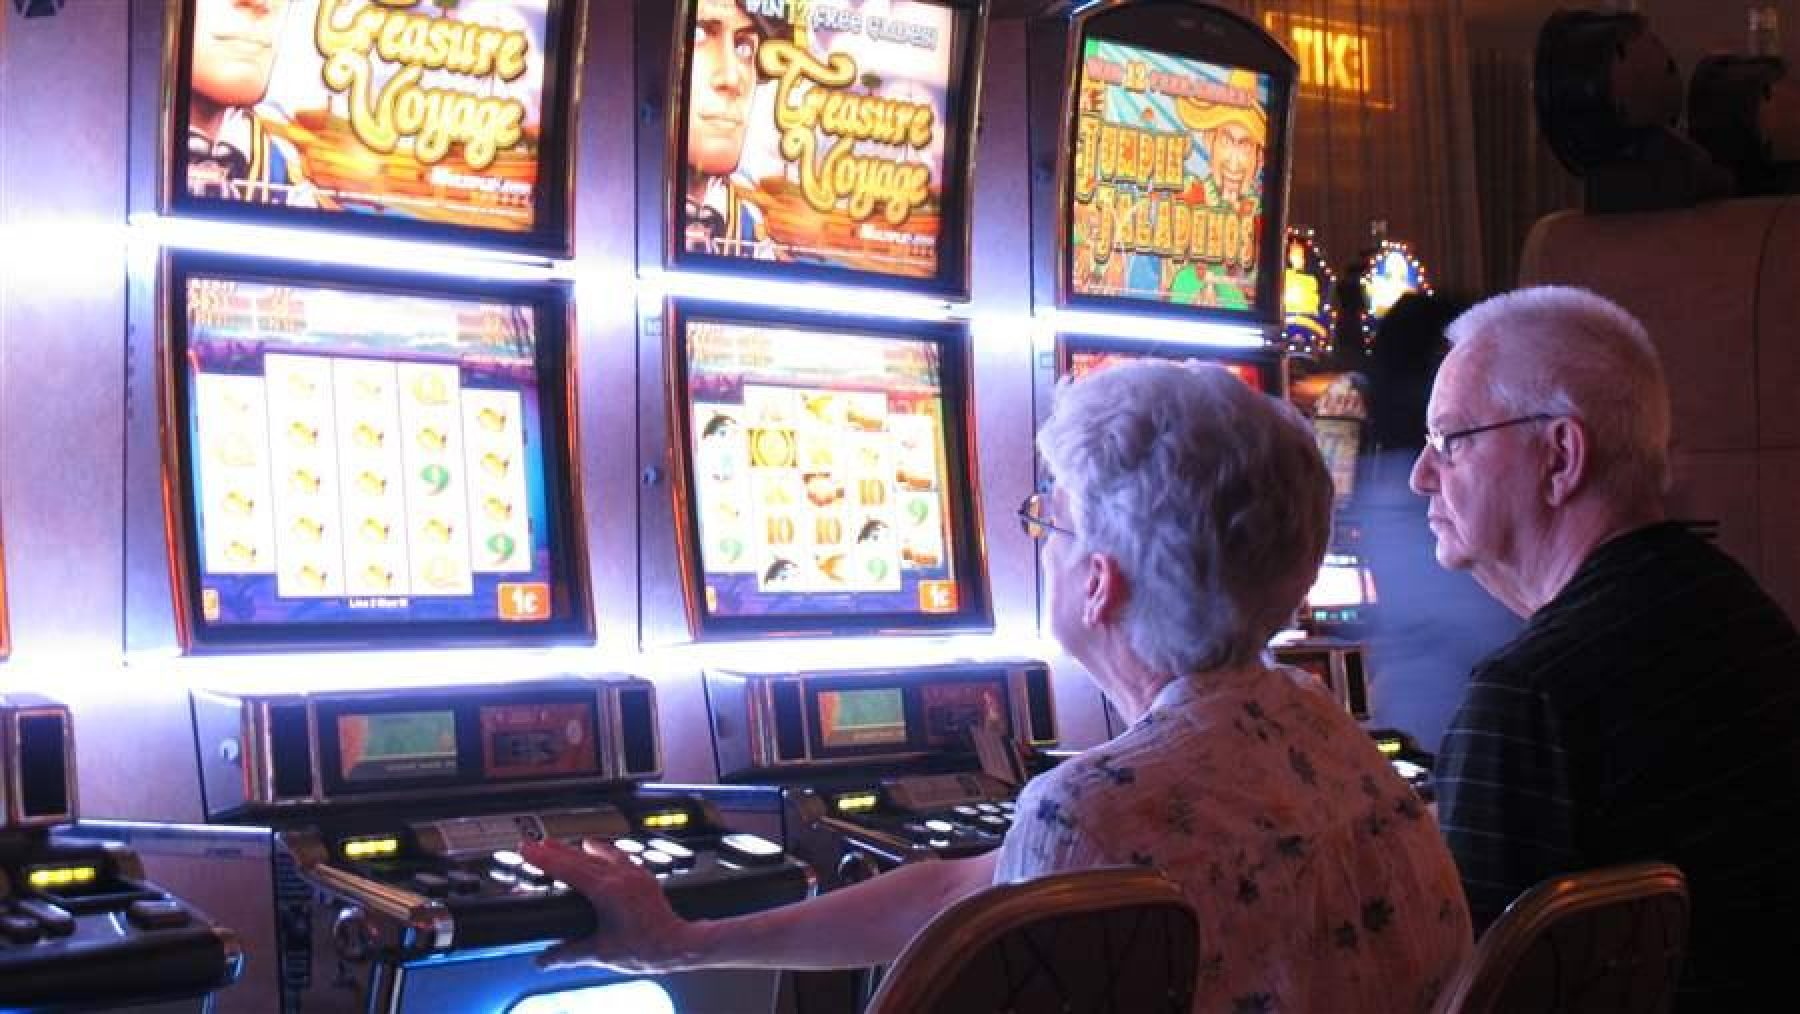 Aging Coalition - Gambling Addiction Among Adults